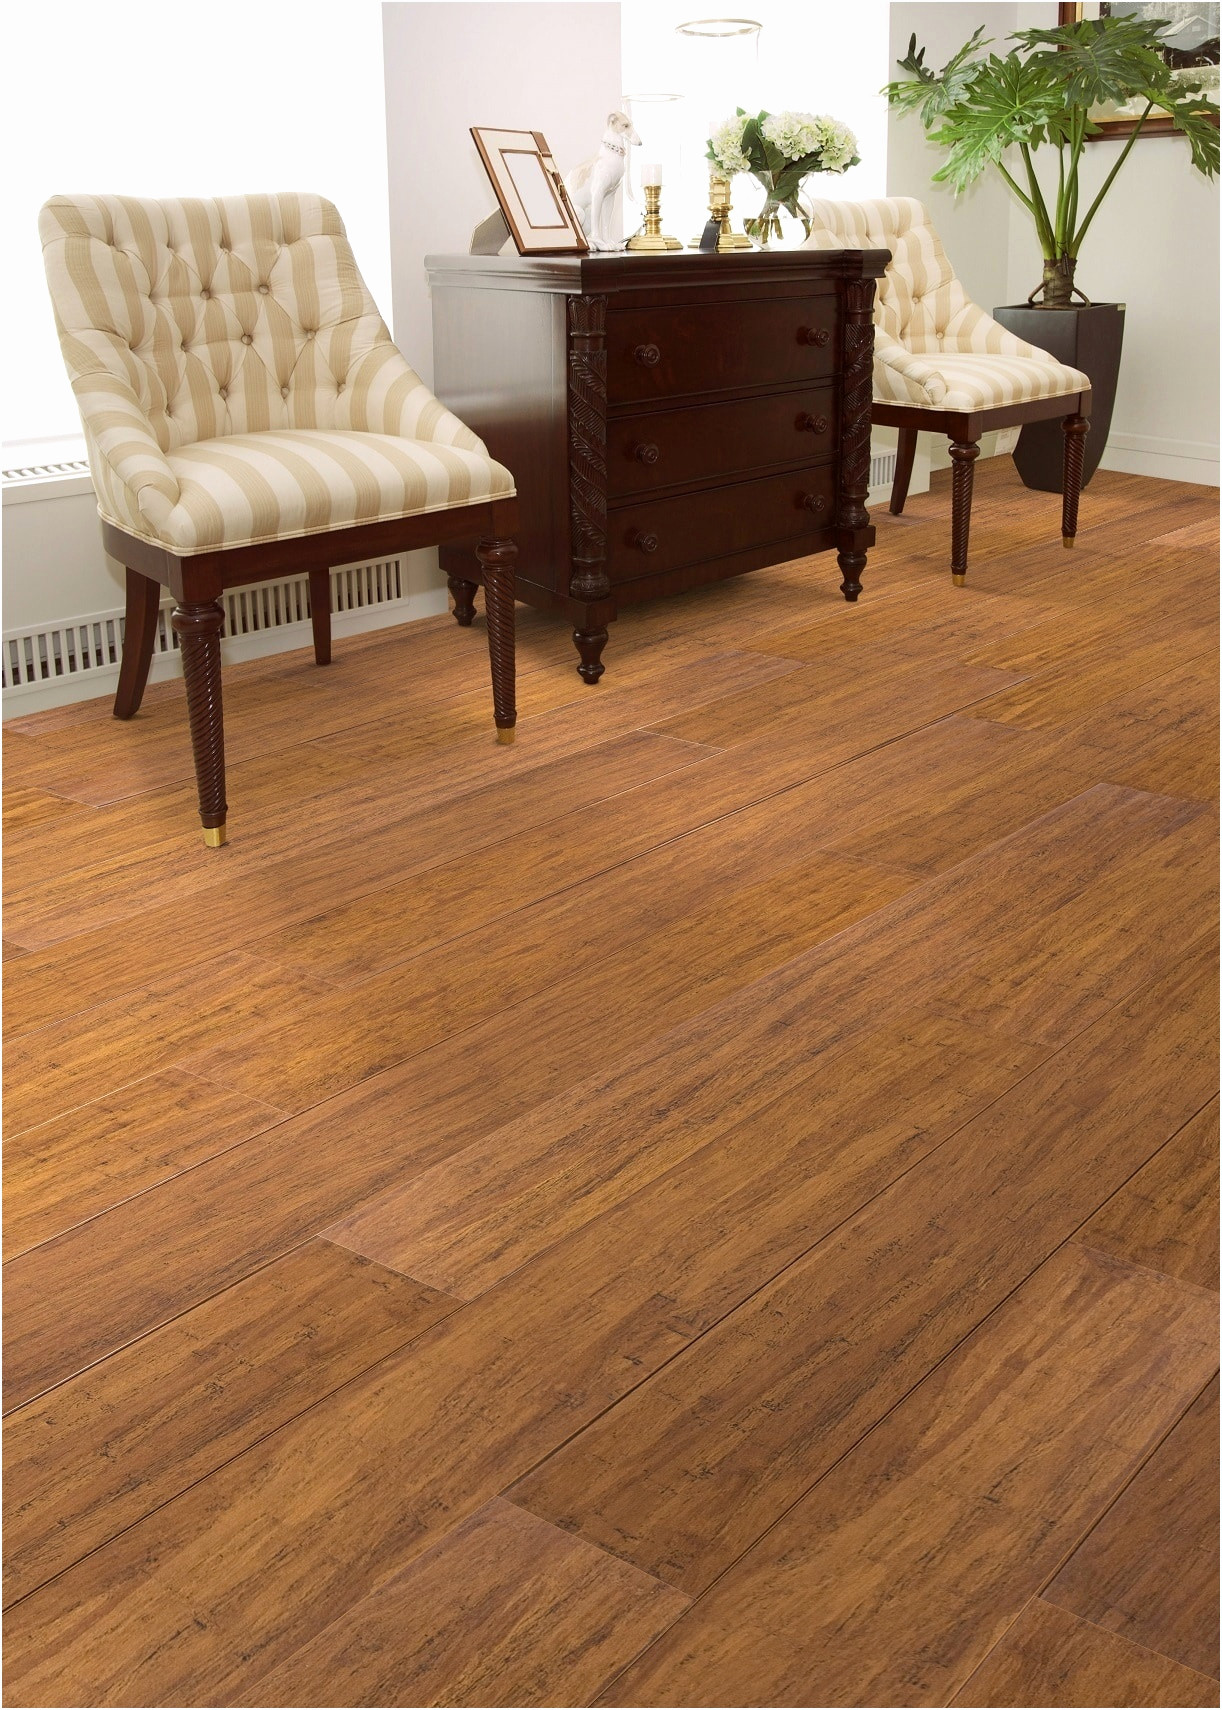 laminate flooring versus engineered hardwood of engineered hardwood vs bamboo unique hardwood flooring accessories within flooring vs 28 new image of engineered hardwood vs bamboo engineered hardwood vs bamboo fresh how long does